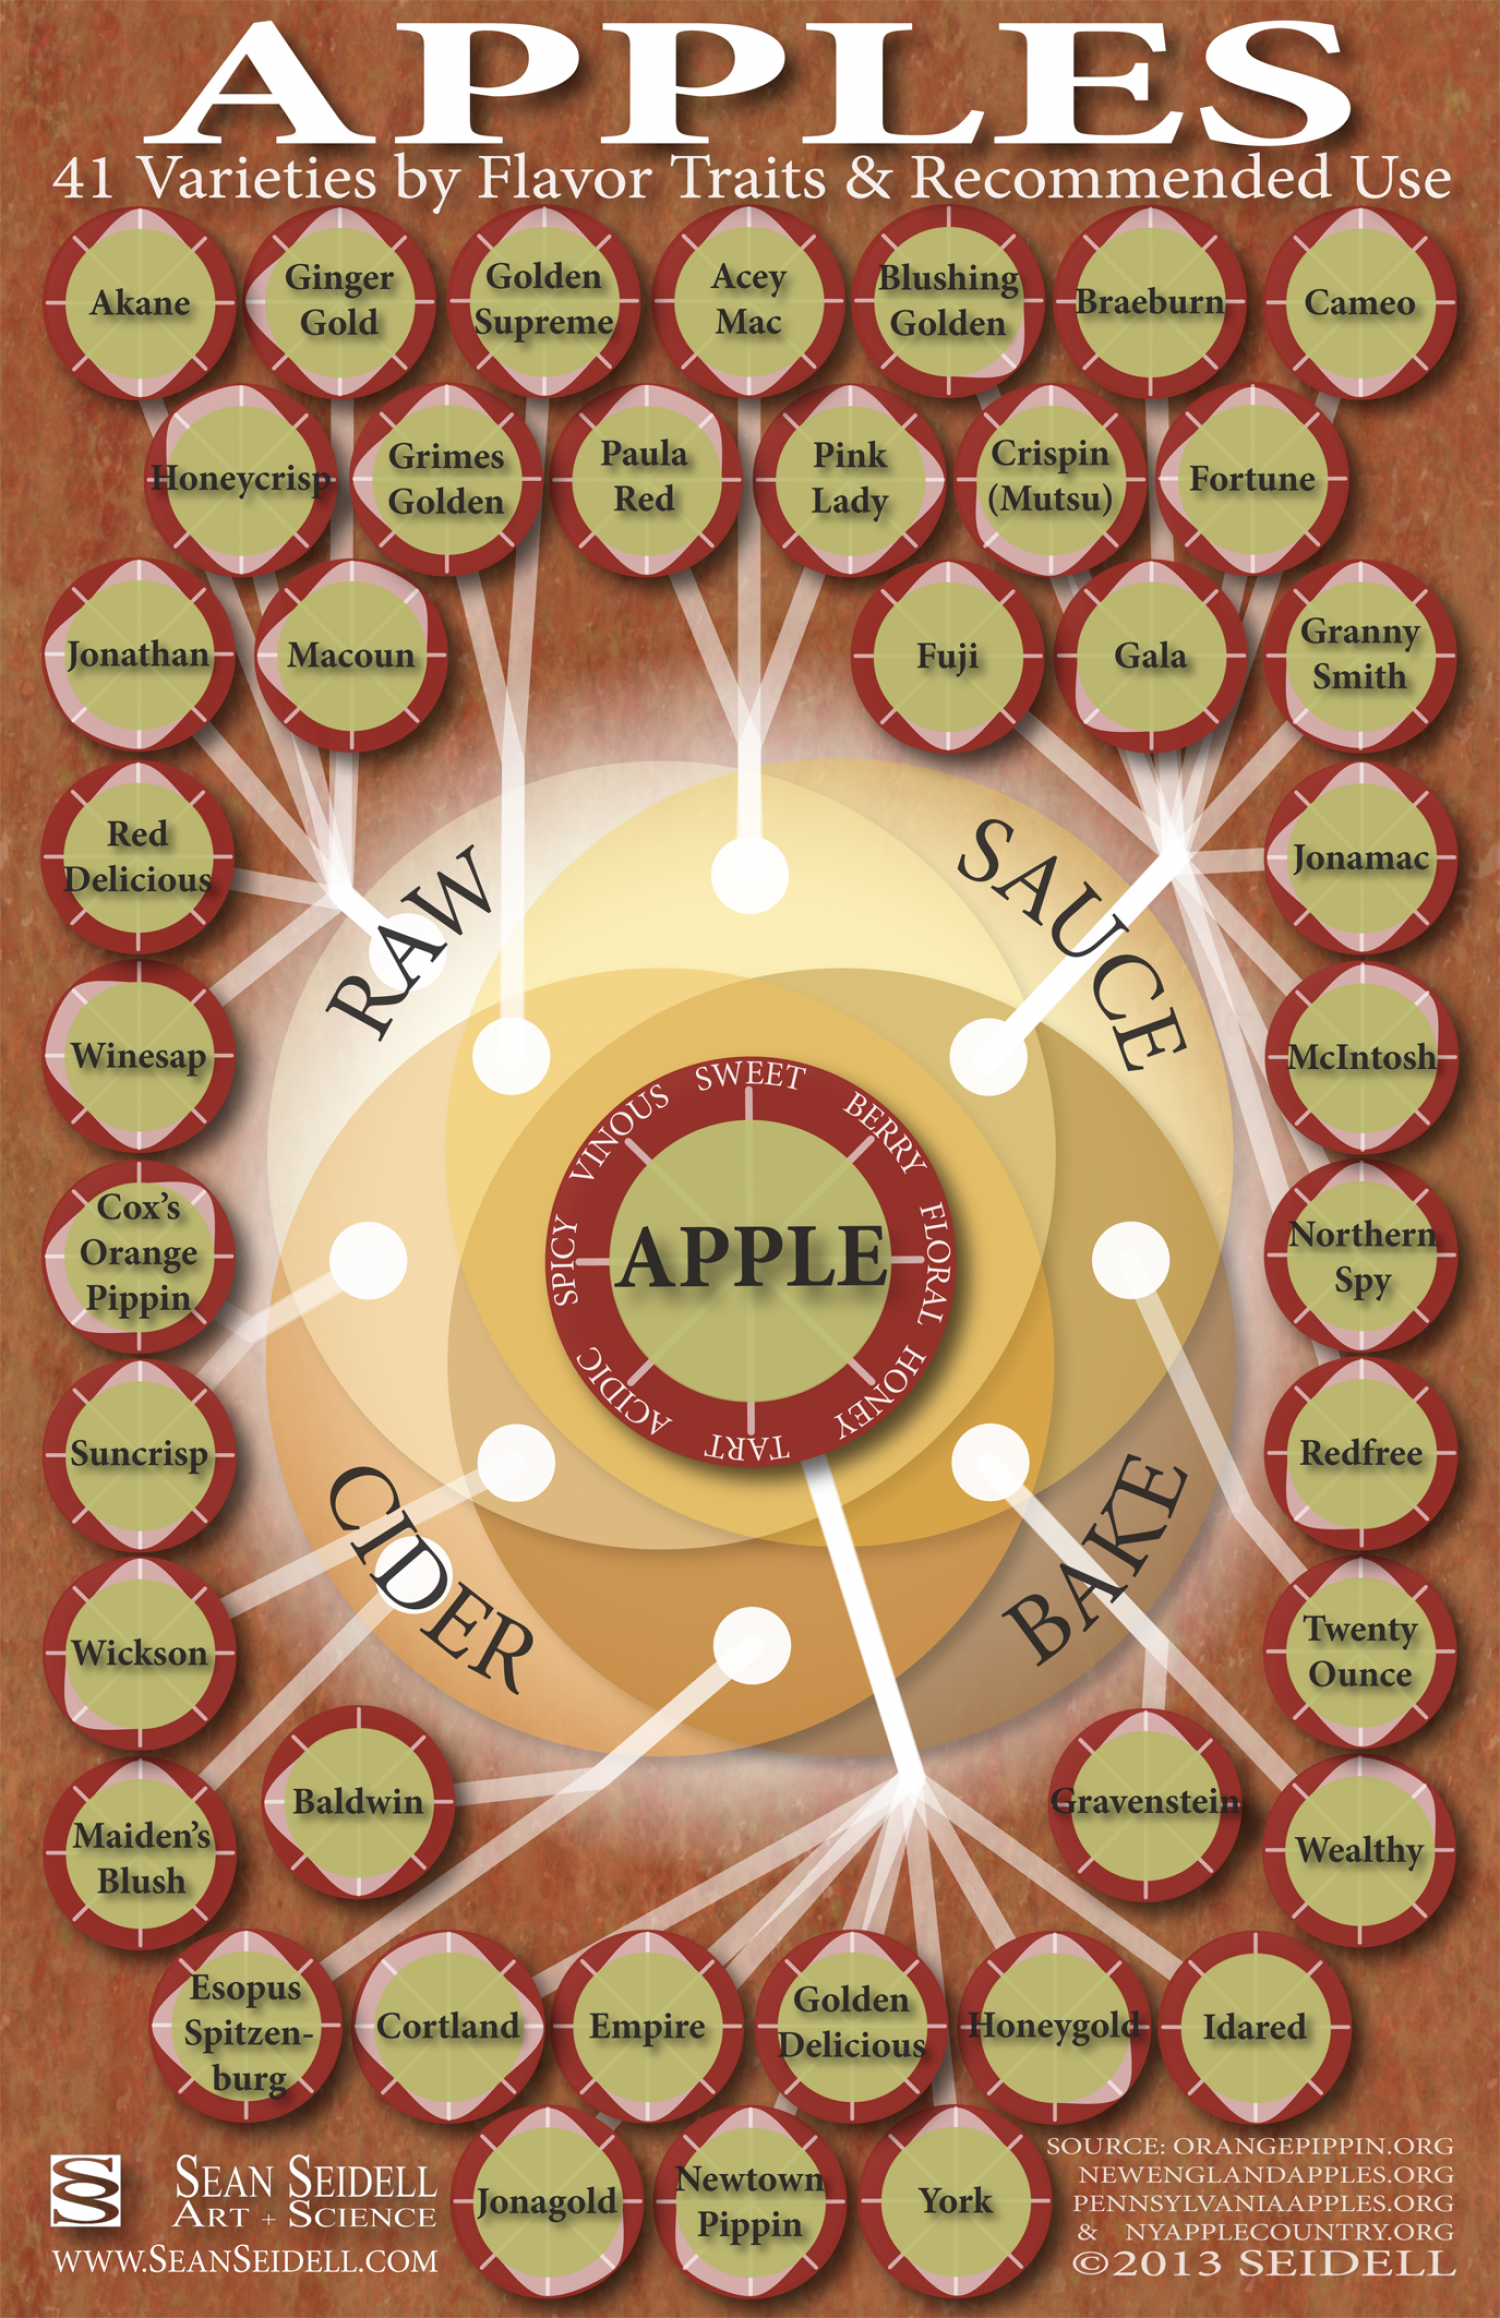 Apples: 41 Varieties by Flavor Traits and Recommended Use Infographic